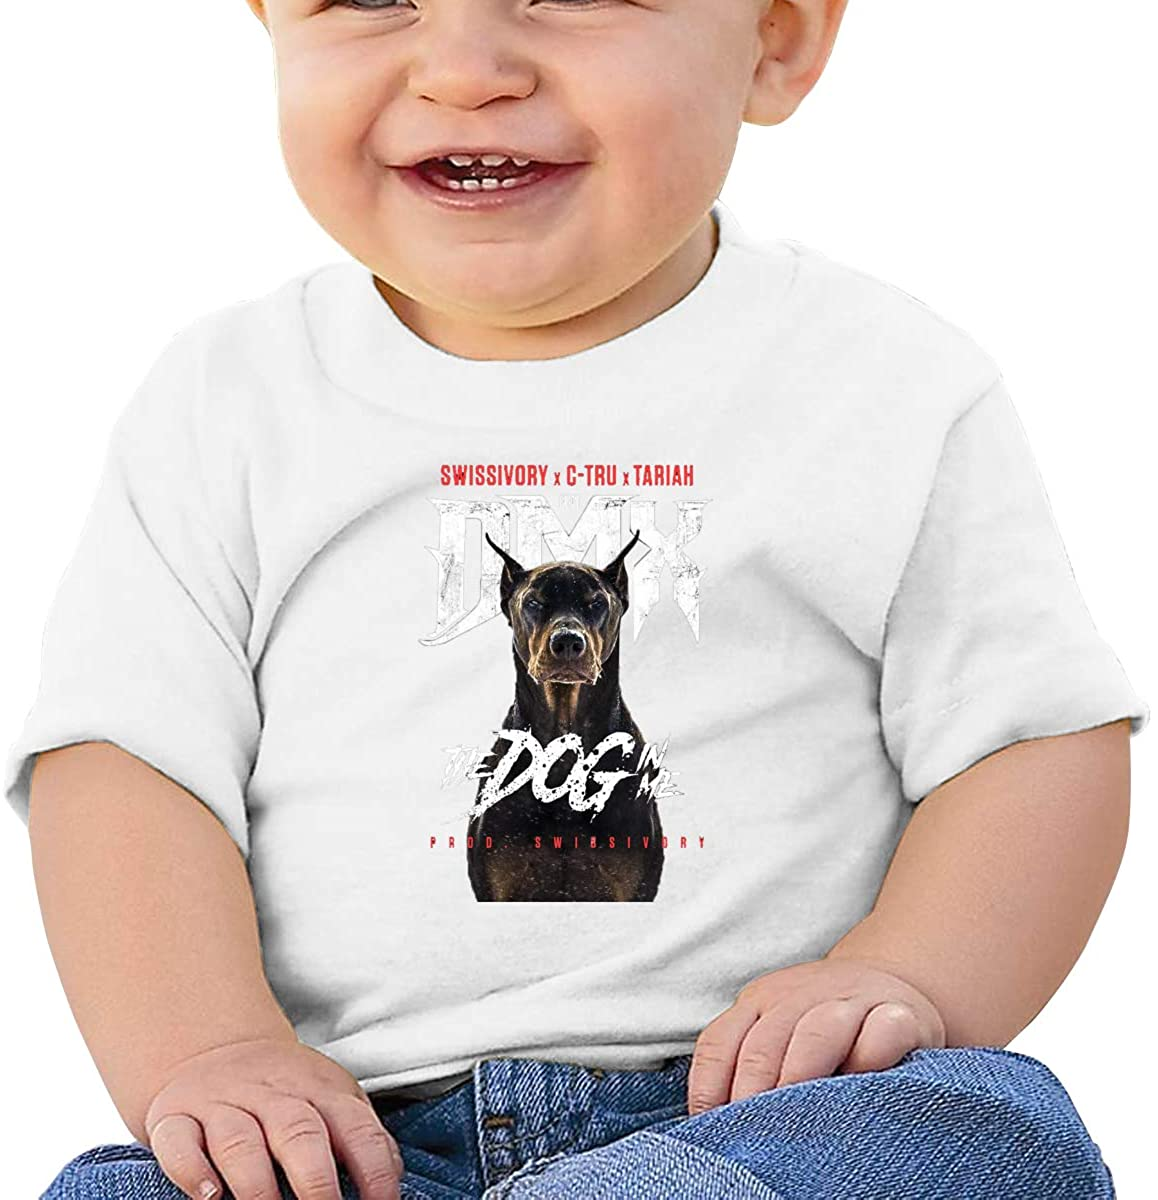 AP.Room Colorful Short-Sleeved Comfortable and Refreshing Shirt DMX Baby T-Shirt